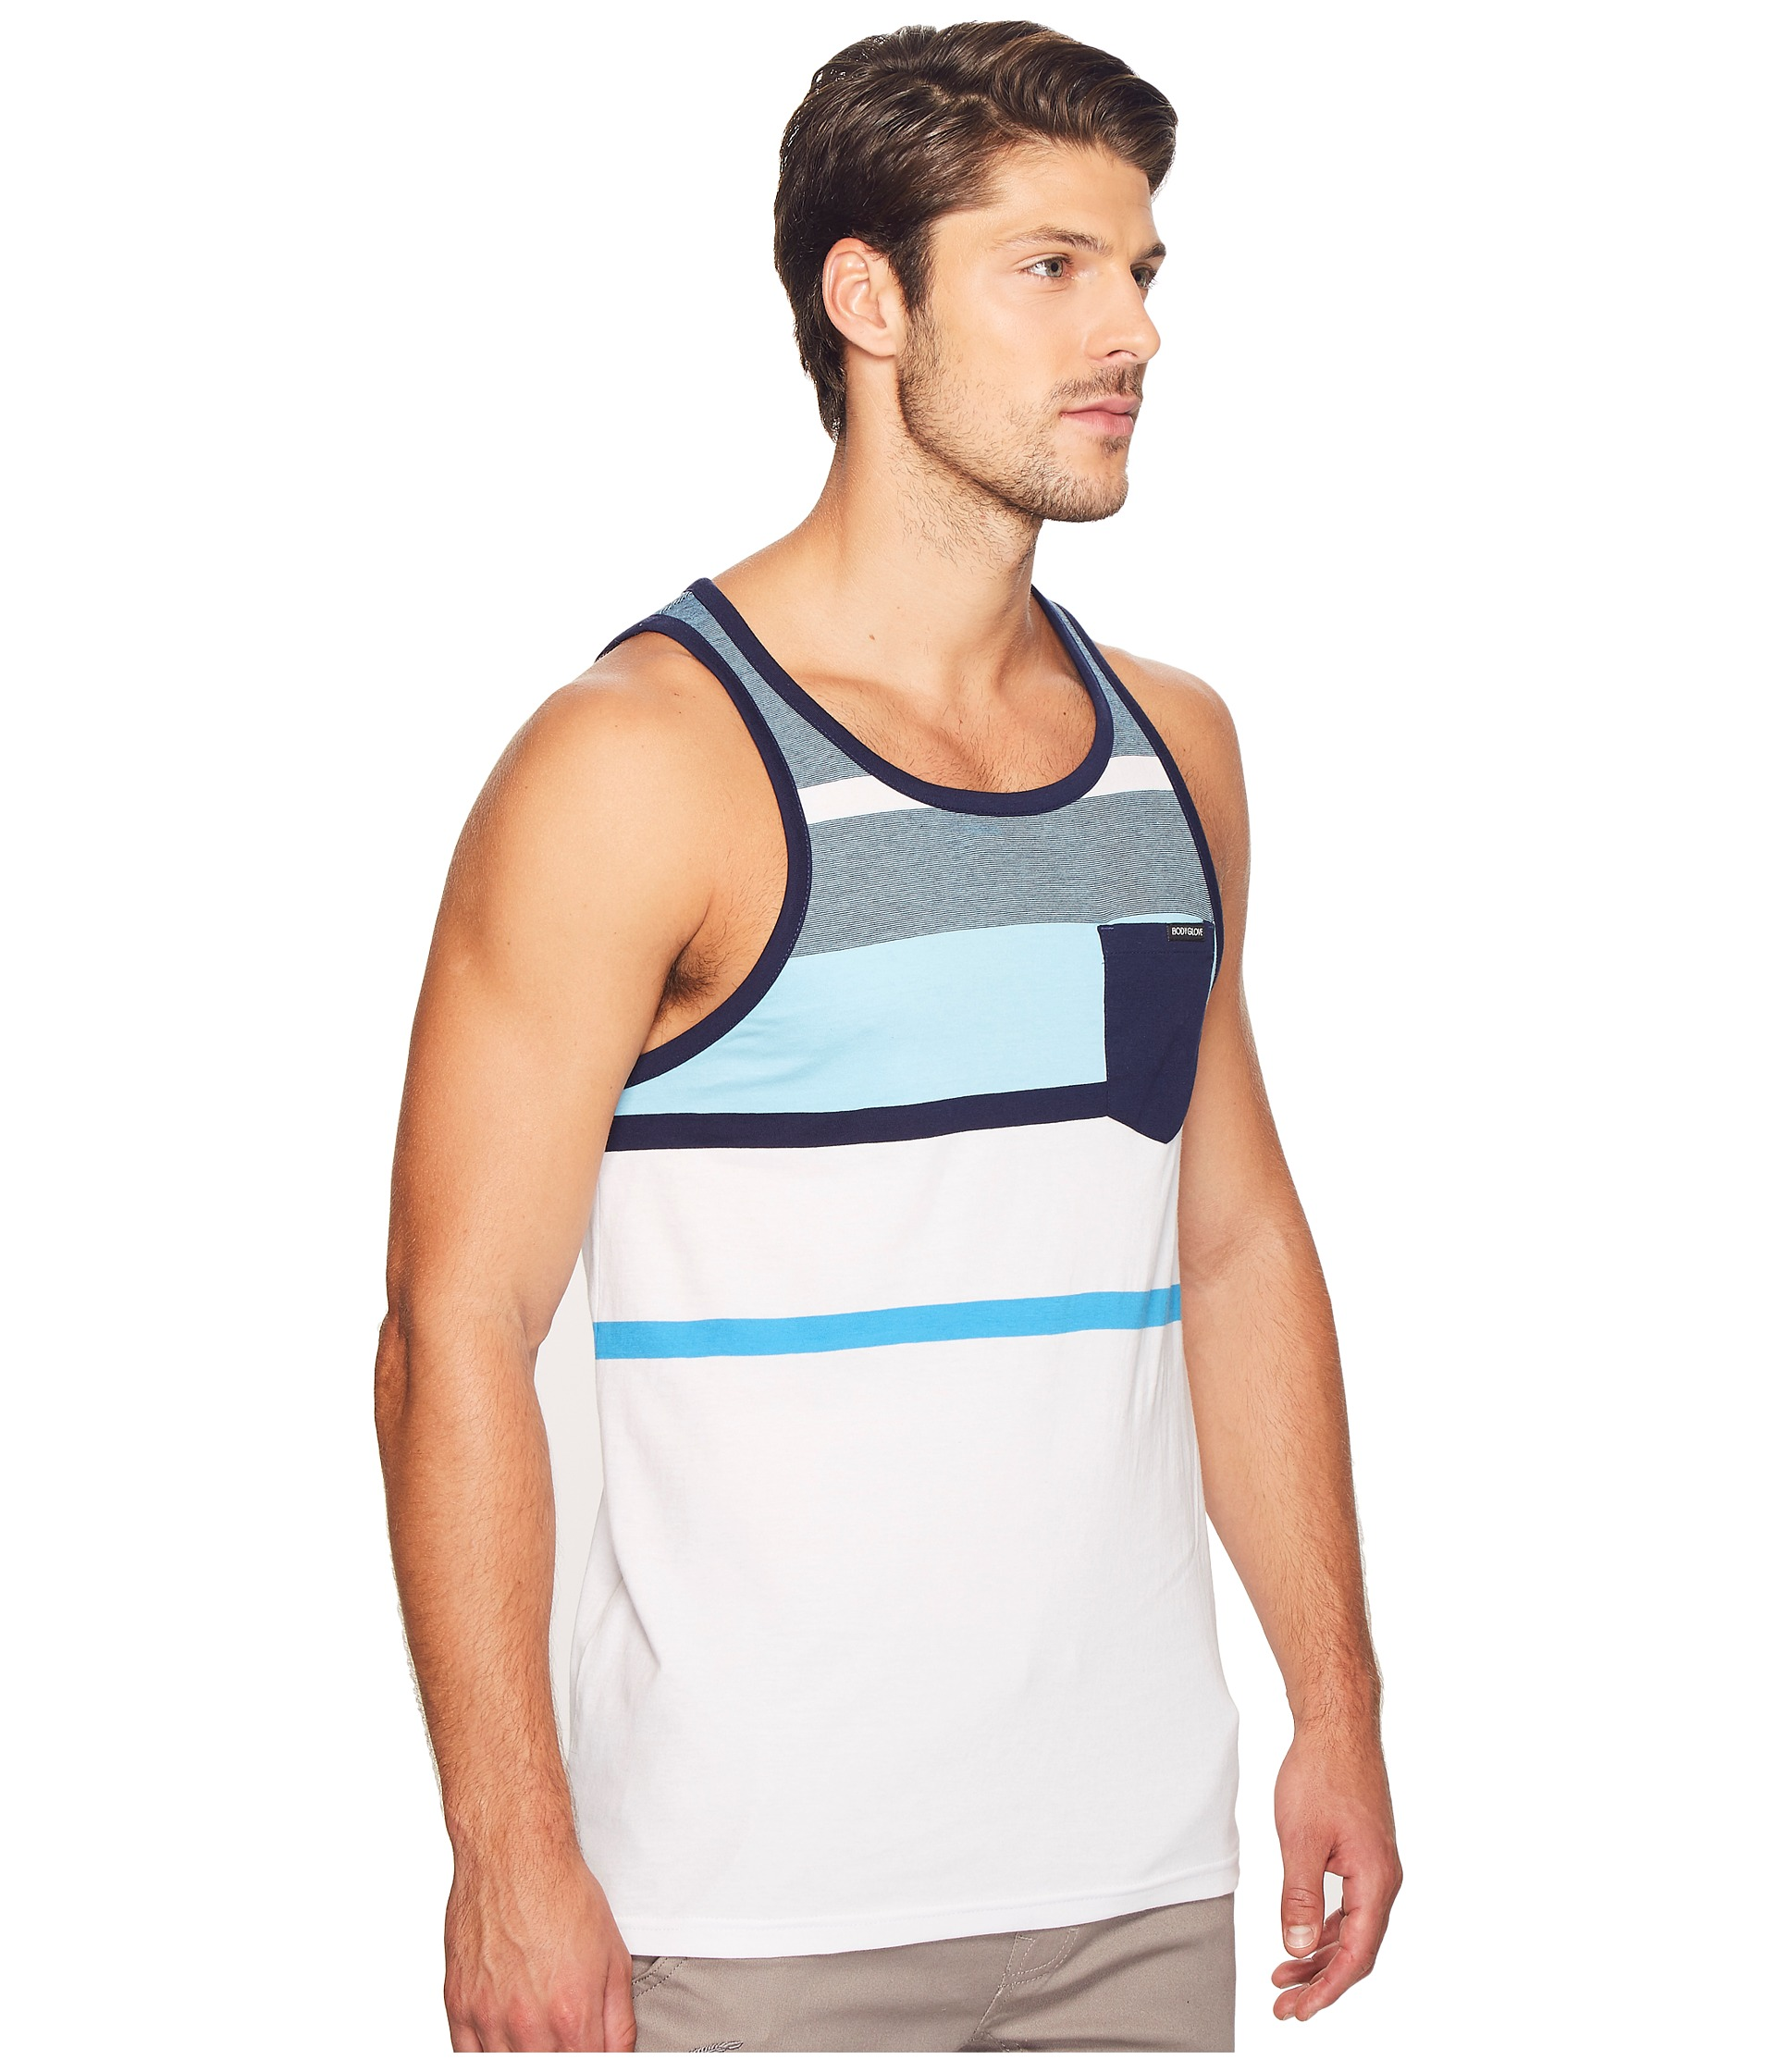 At Hobie Surf Shop find Women's tank tops, muscle tanks, spaghetti straps and bandeau tops from the most popular brands in the action sports industry.